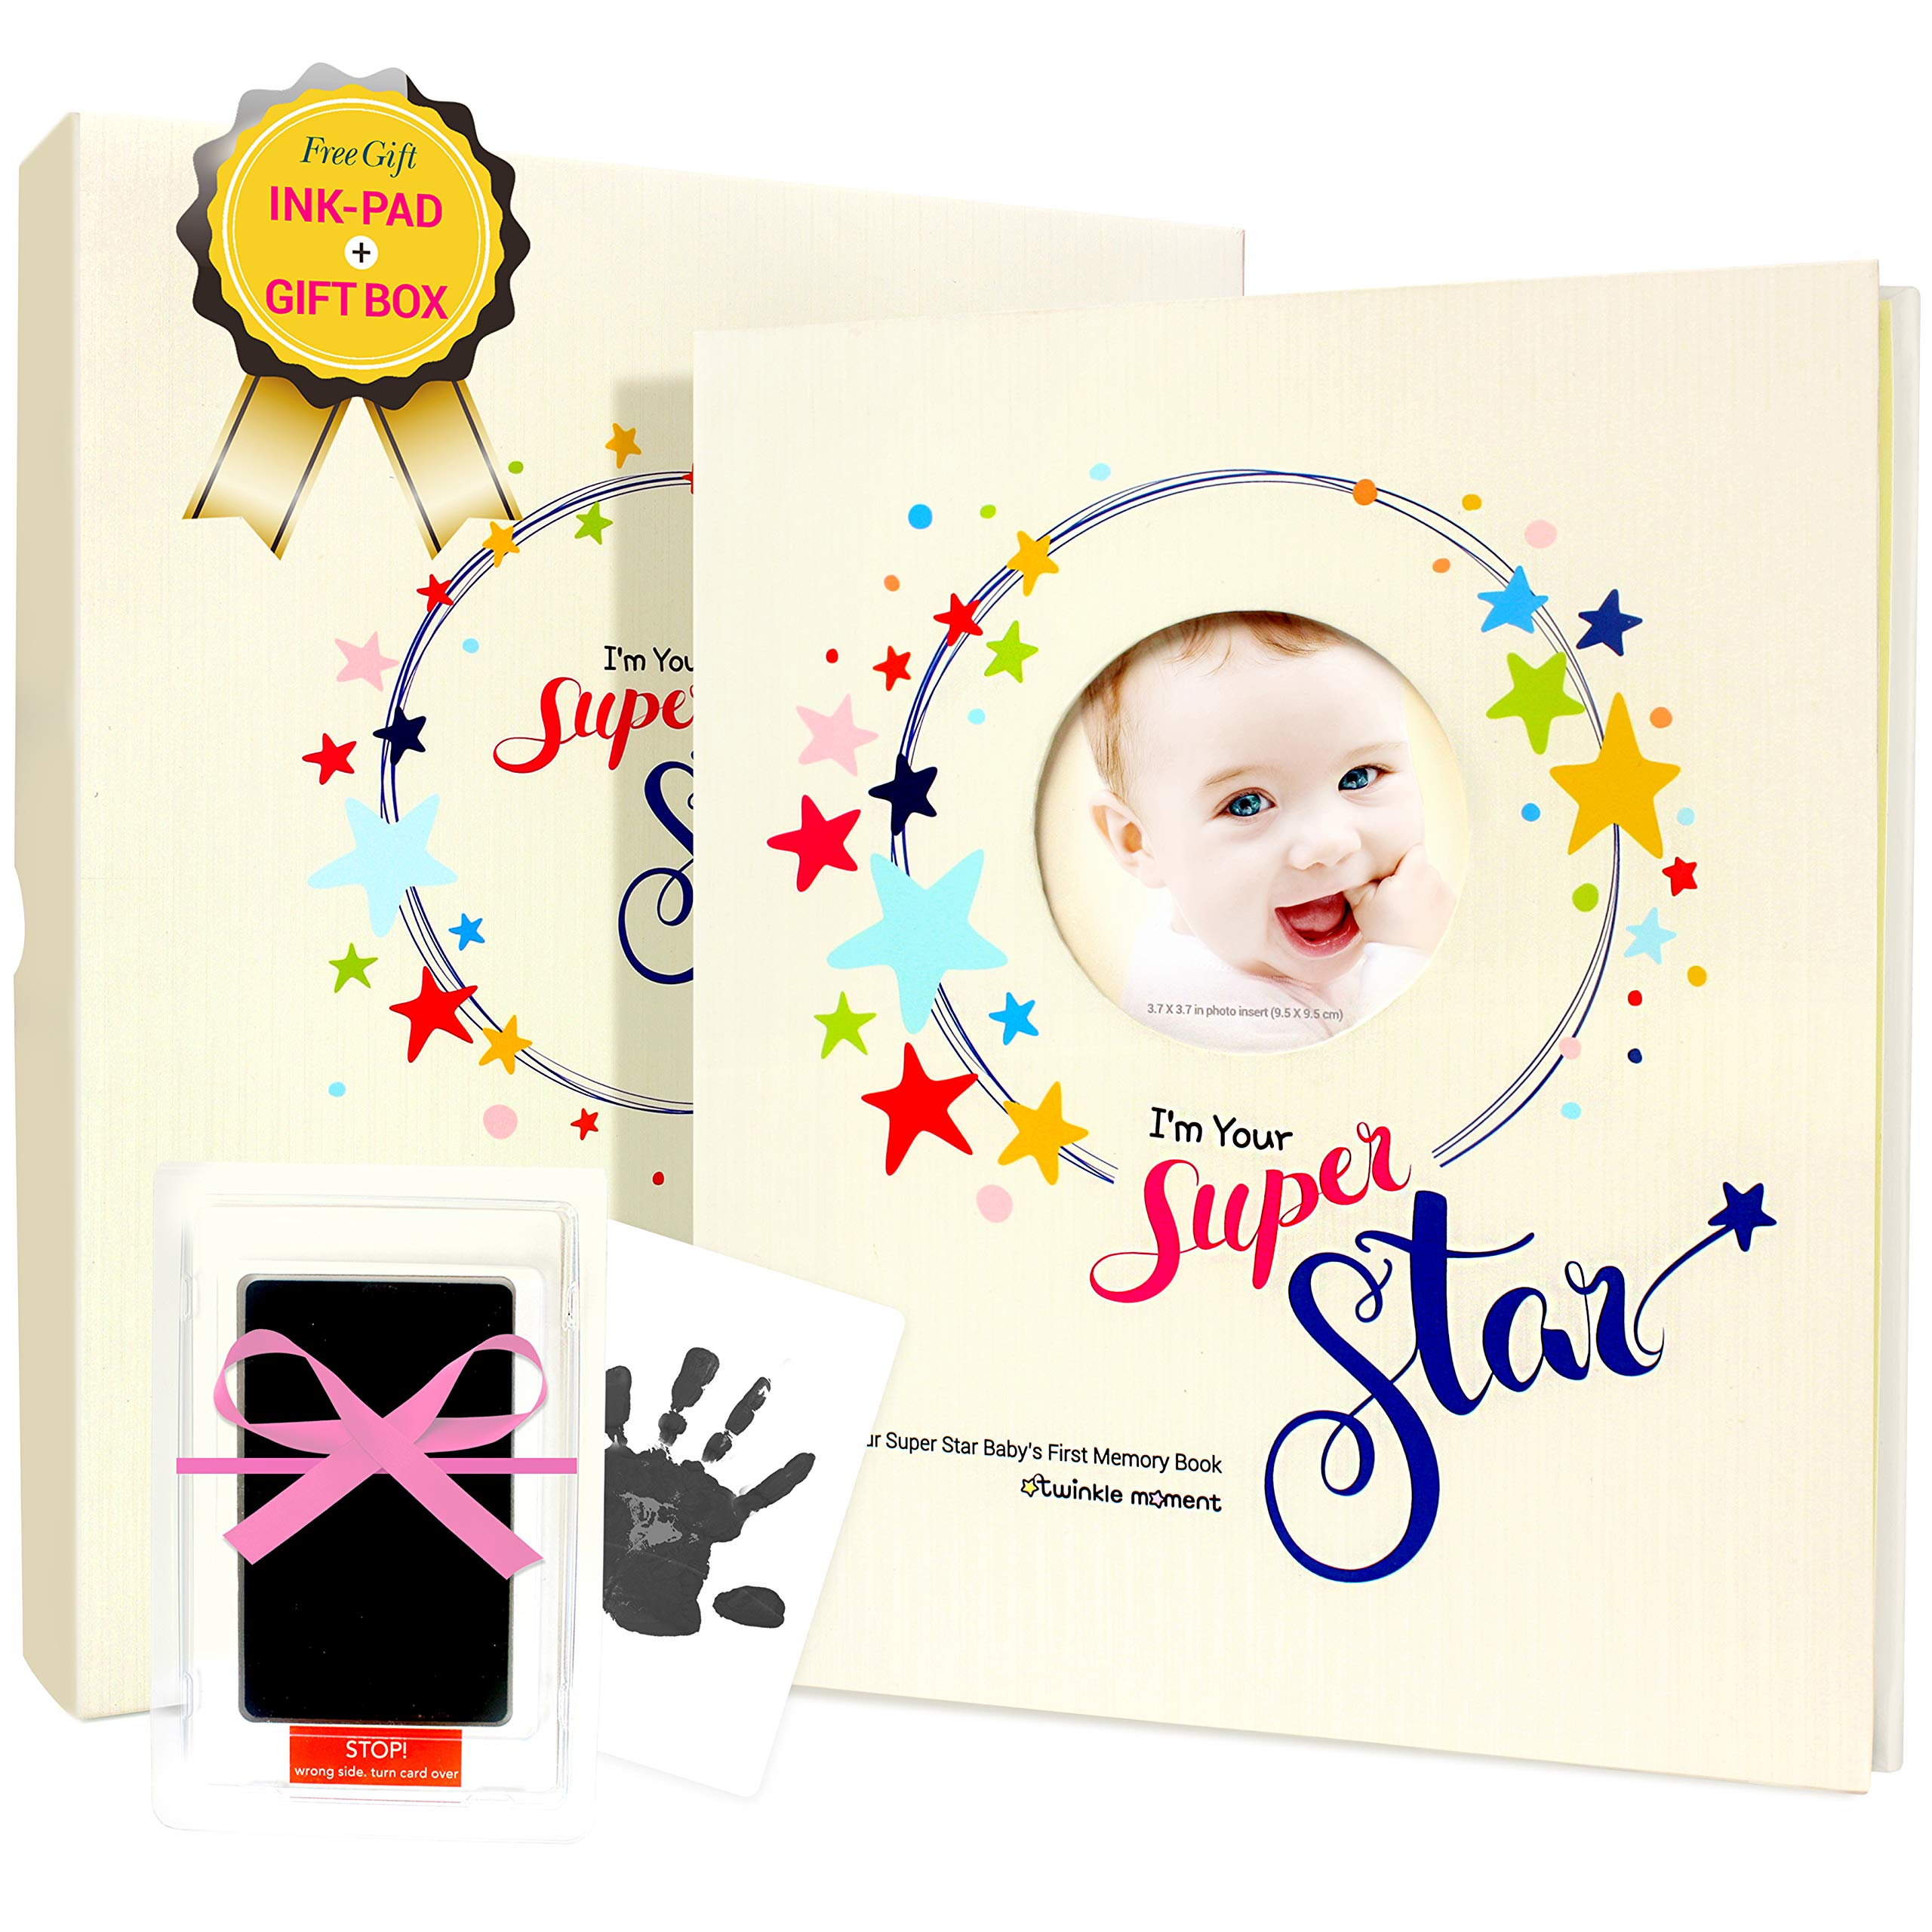 2019 New First-Five Year Baby Memory Book +Ink pad Set- Record Monthly Milestone Books Newborn Girl, boy Babys & Gifts for Baby Shower, mom dad All Family- 4X6 Photo Cute Album Journal Twinkle Moment